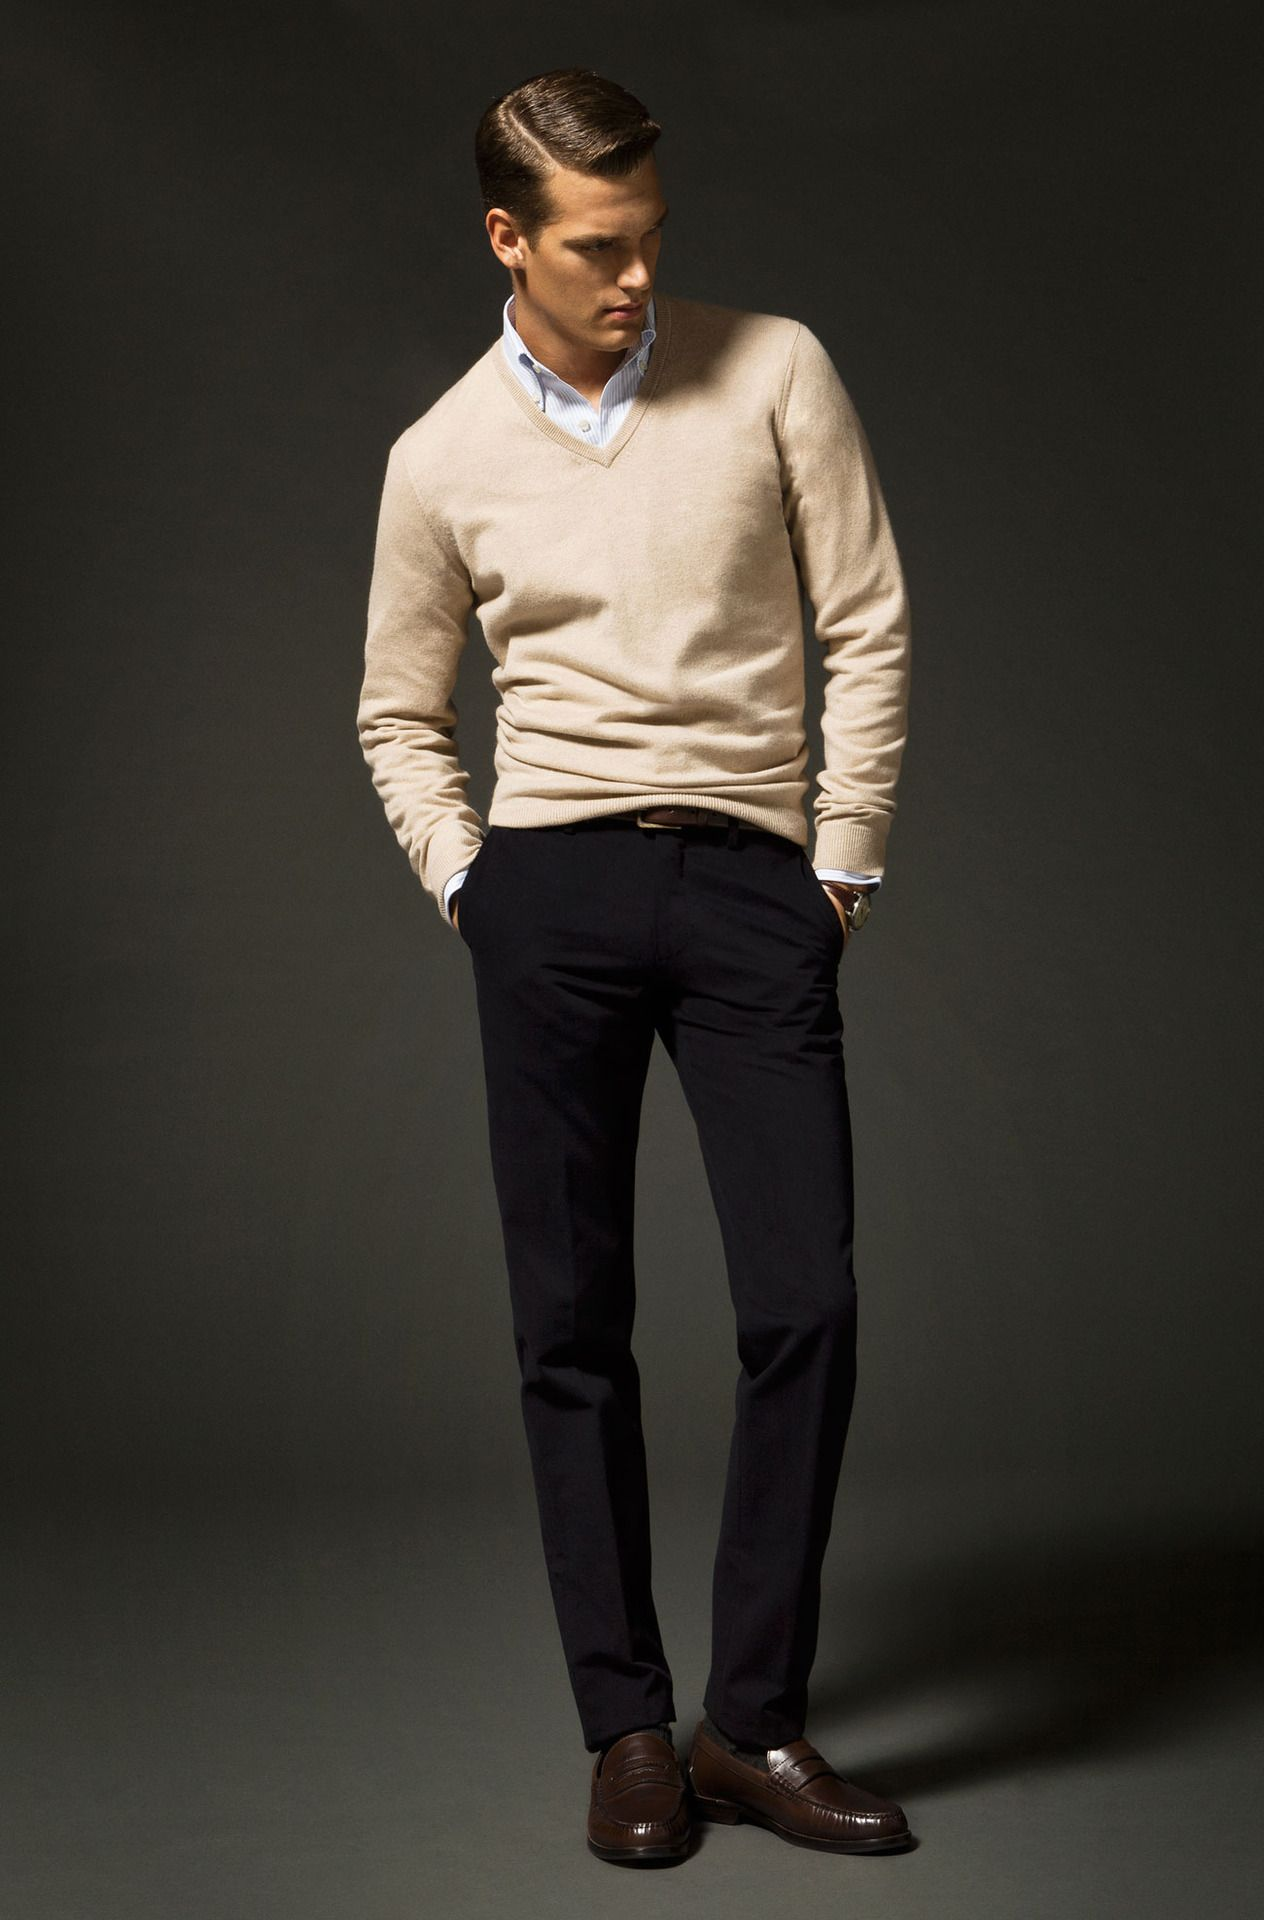 maletrends: MALE TRENDS A blog about men's fashion, lifestyle & more.  Weekend warrior